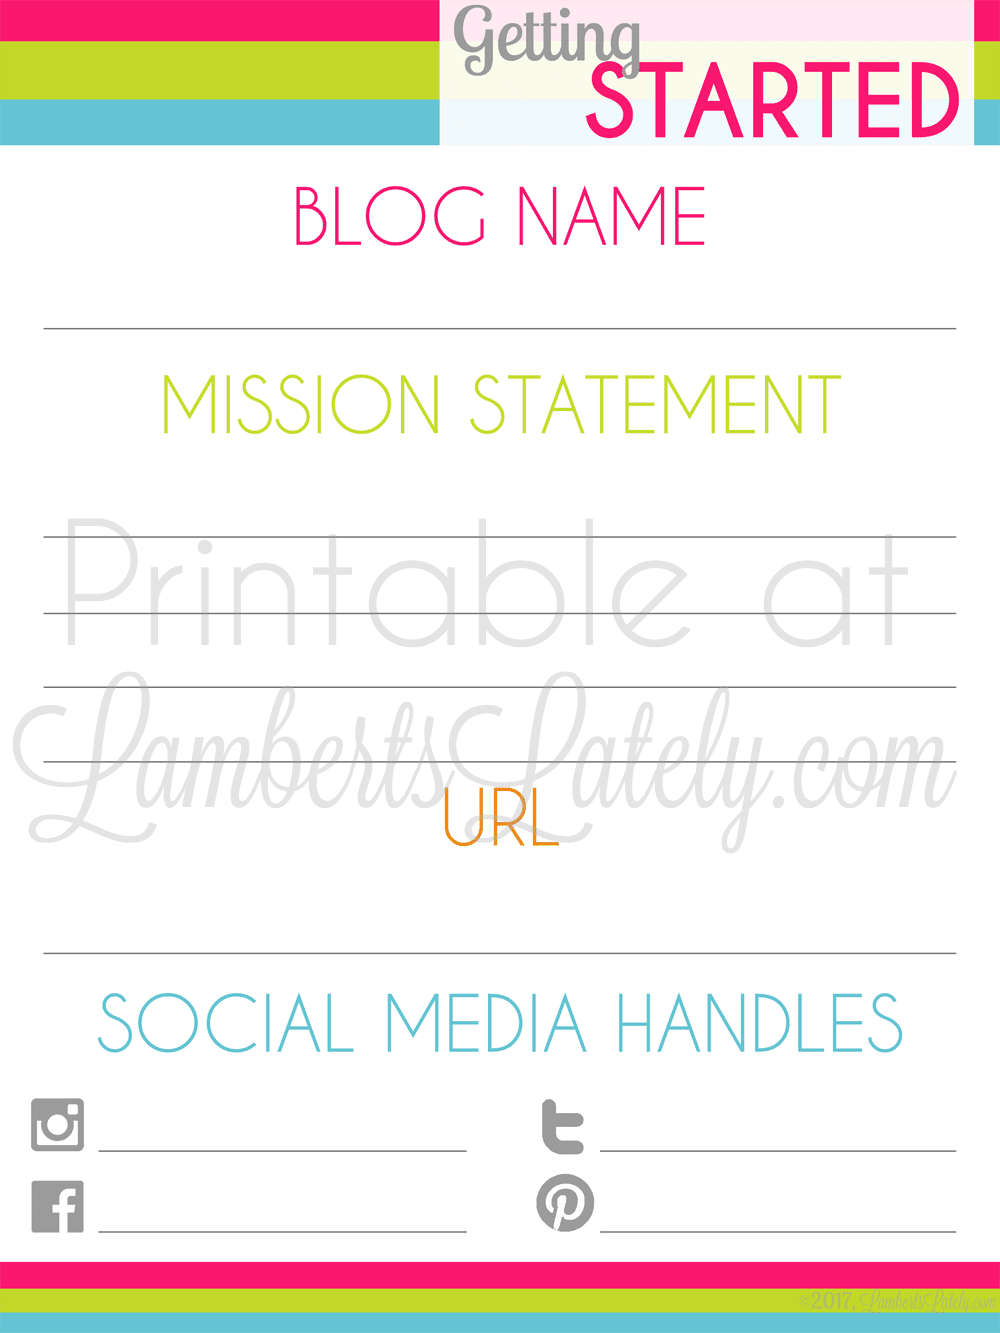 image relating to Printables Blog identify The Greatest Blog site Startup Planner (Free of charge Printables